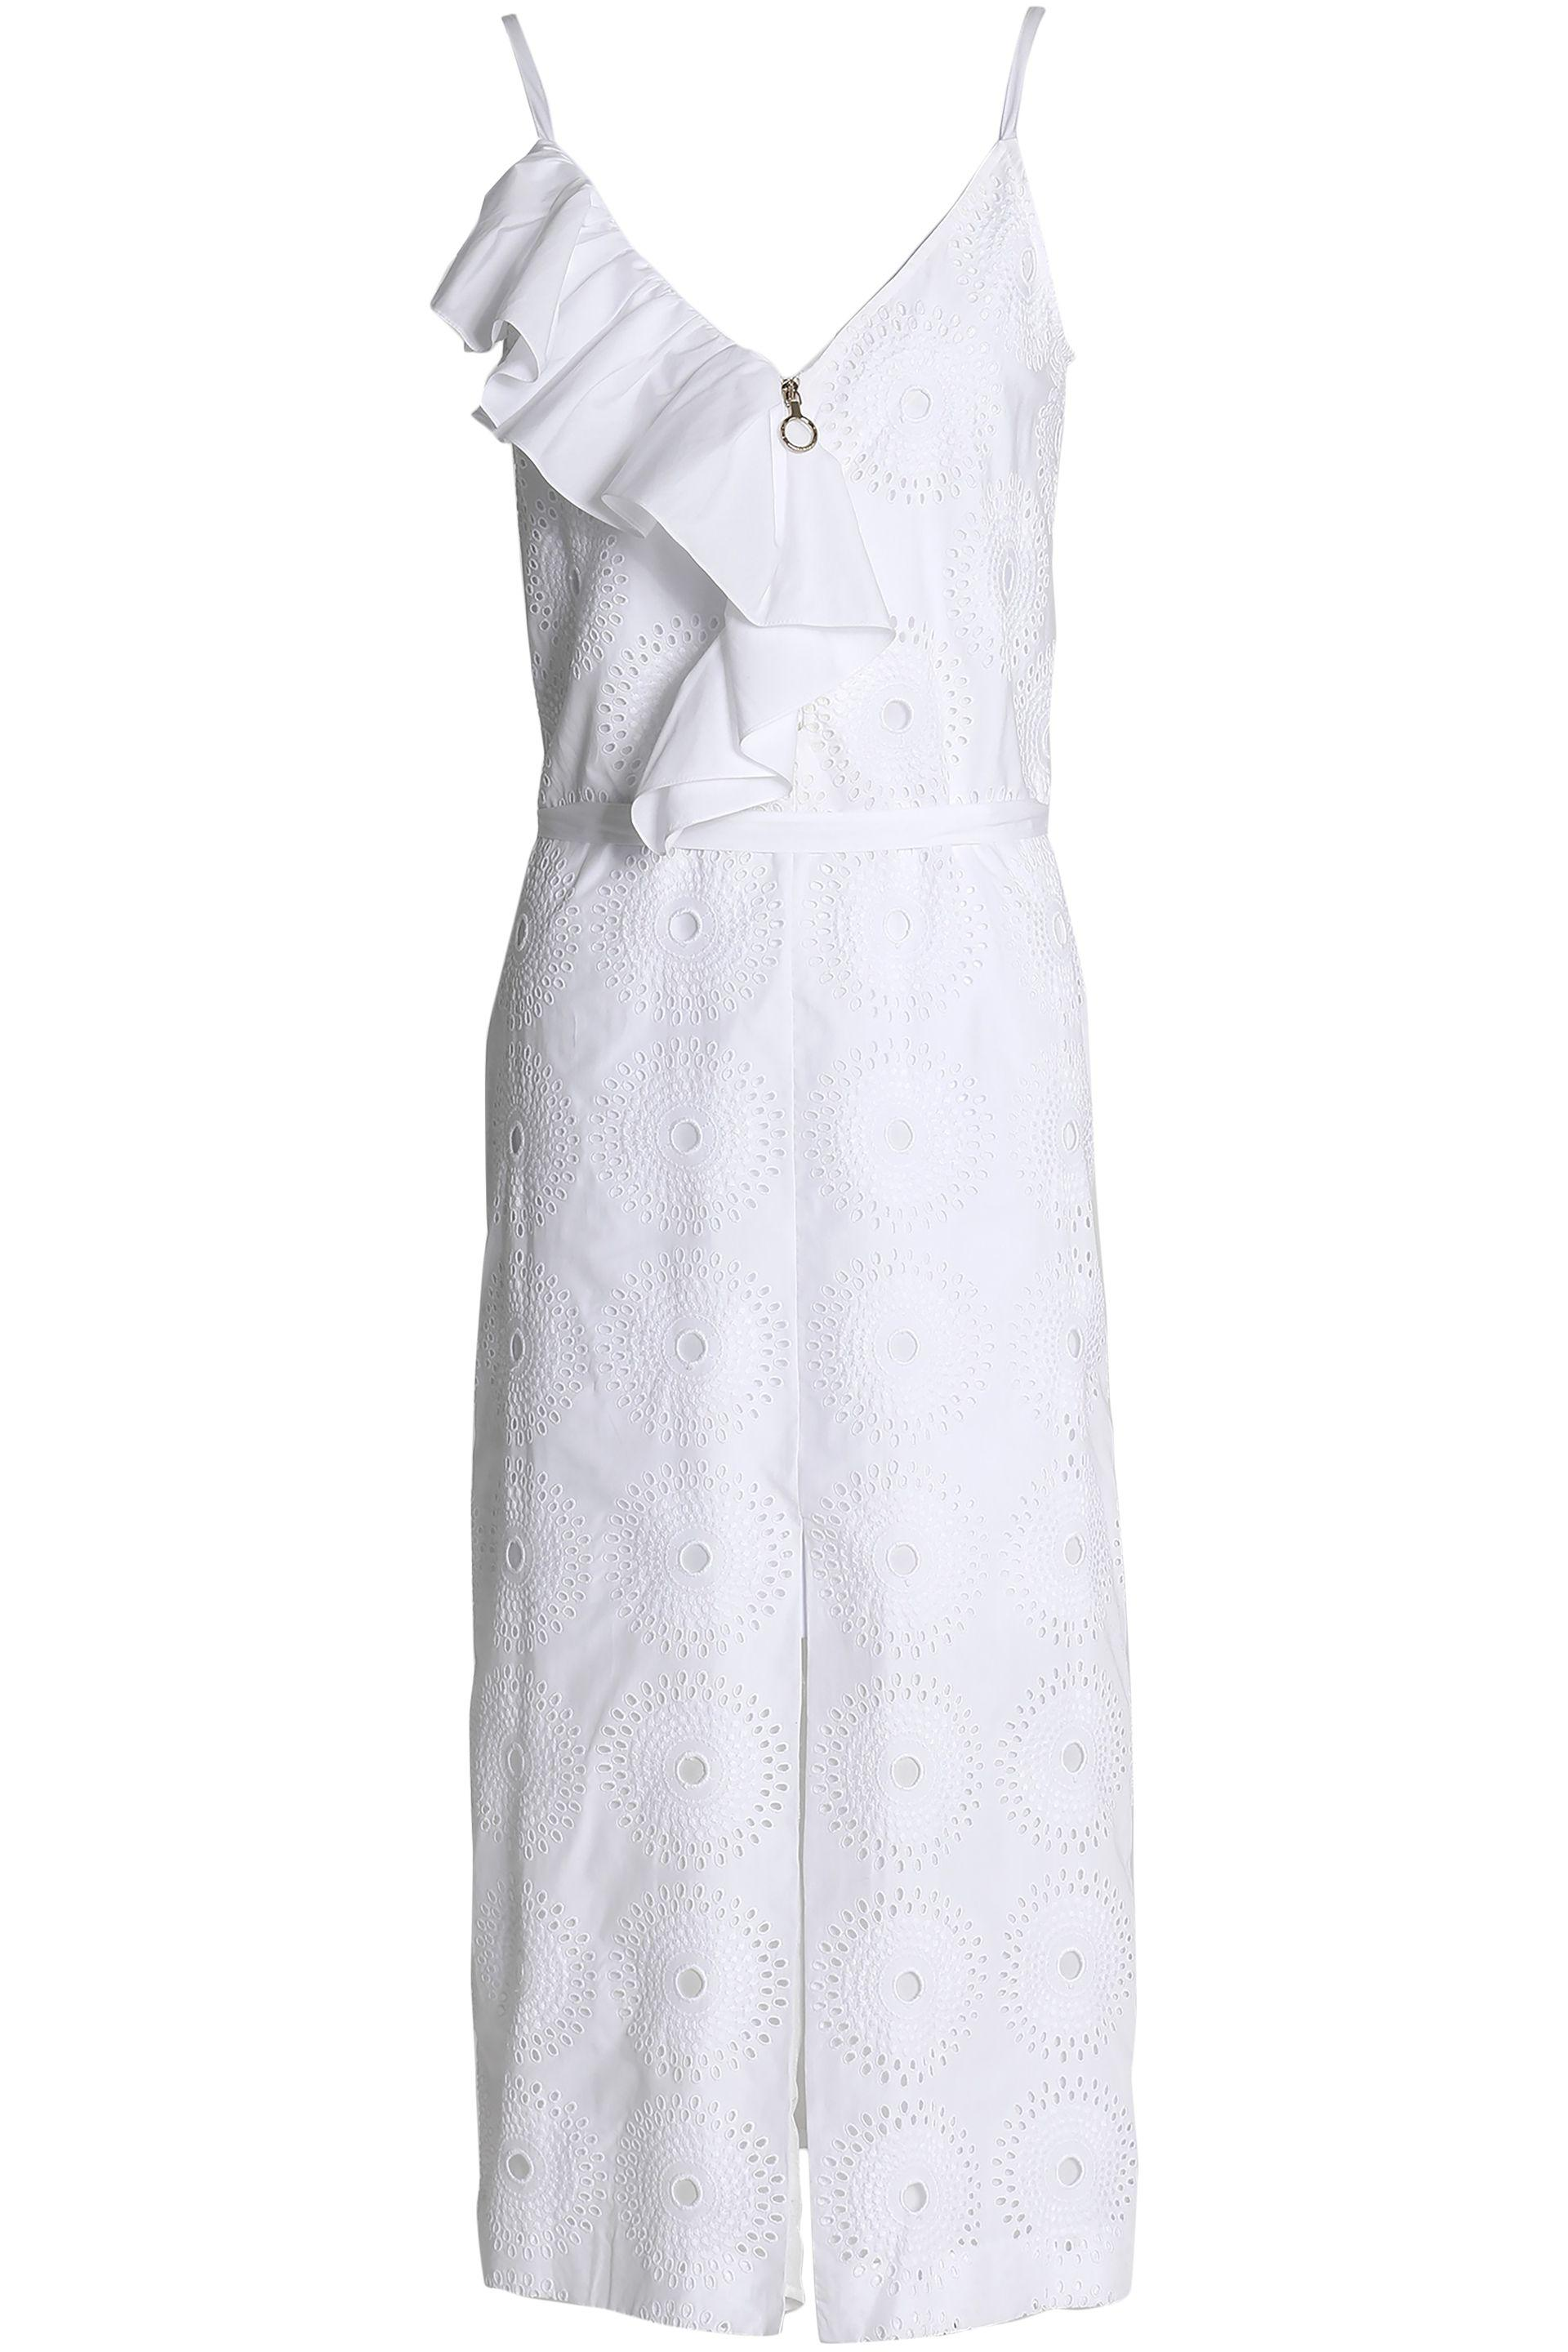 Nina Ricci. Women's White Ruffled Broderie Anglaise Midi Dress